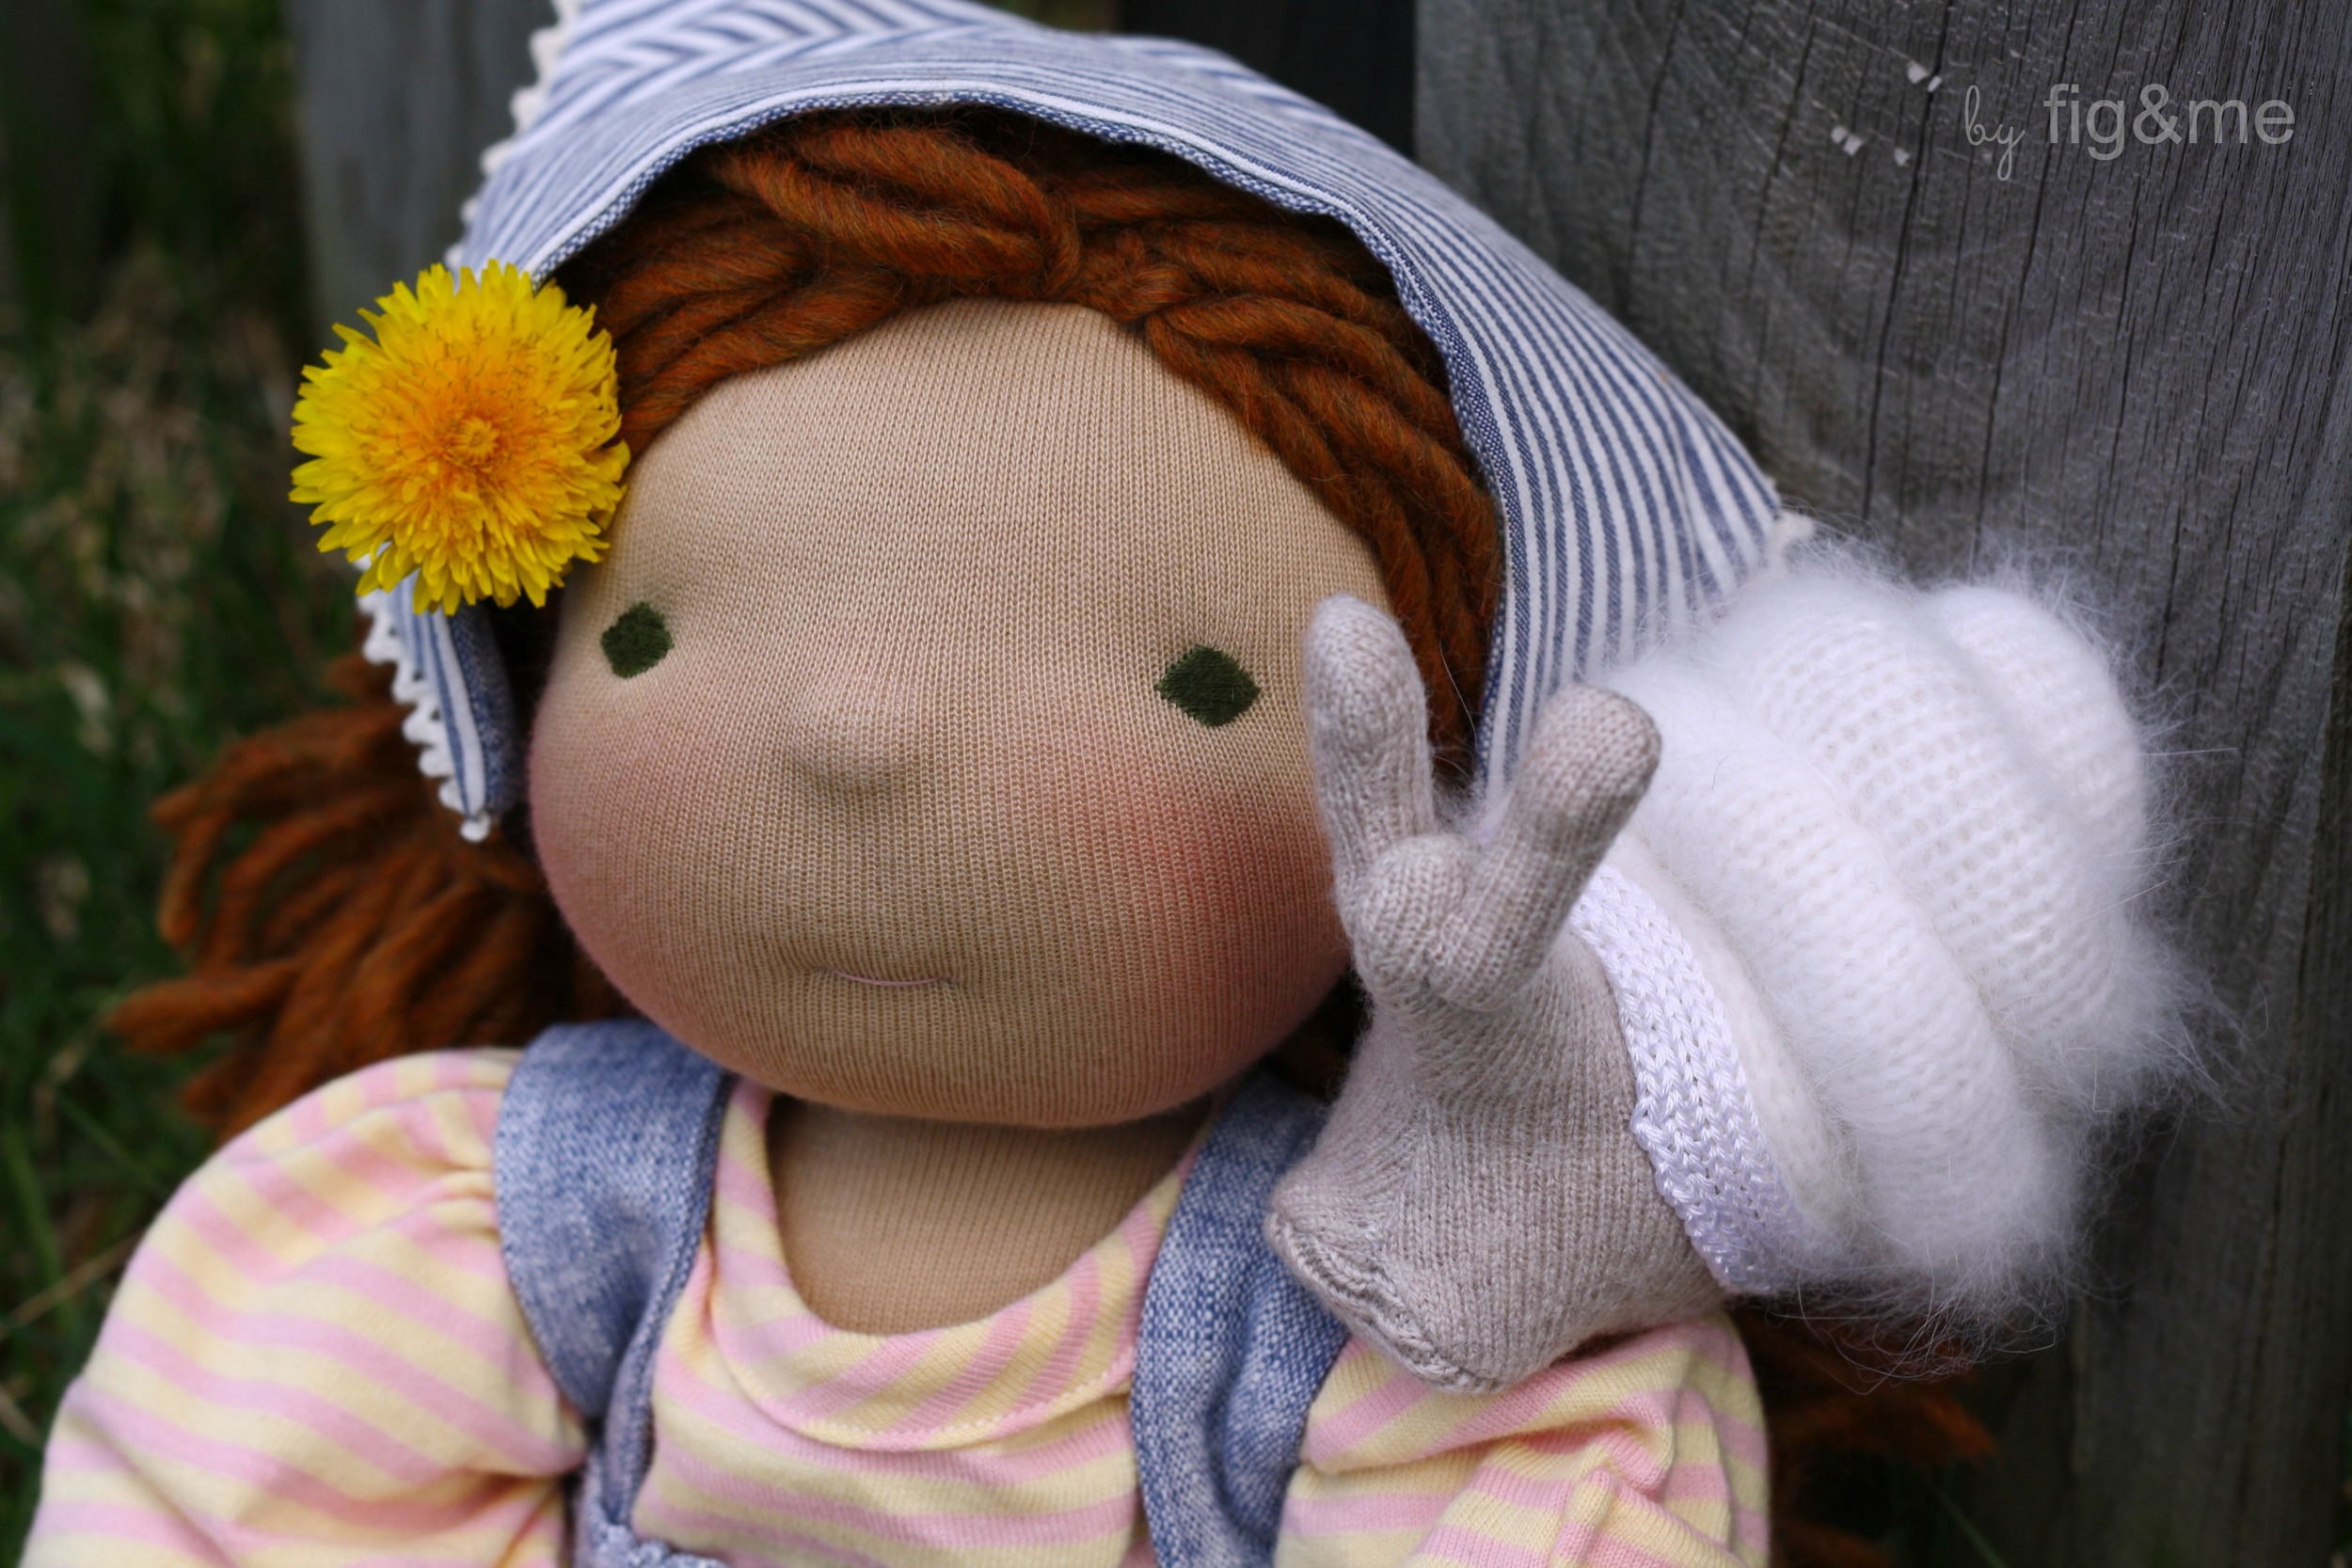 handmade doll and snail toy